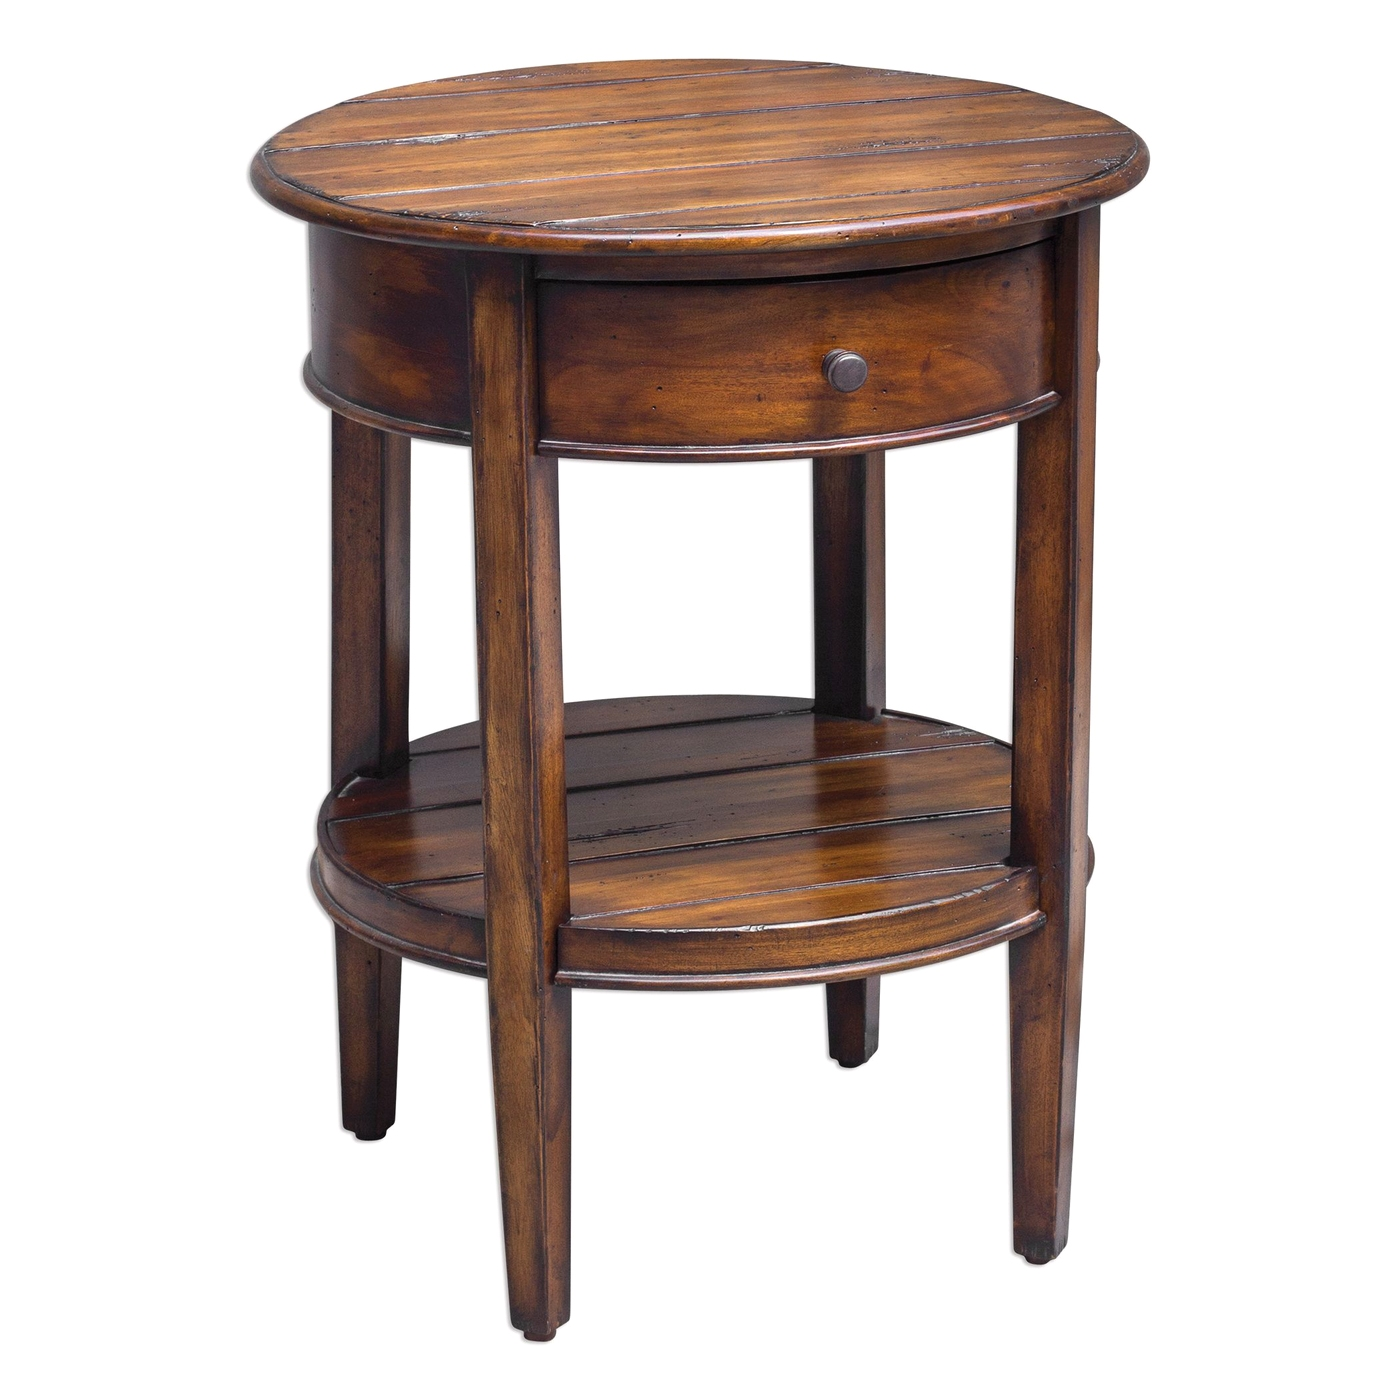 ranalt round deep grained mahogany accent table with antique white unusual tables small black lamp metal folding side meyda tiffany pendant lights pottery barn flooring rustic